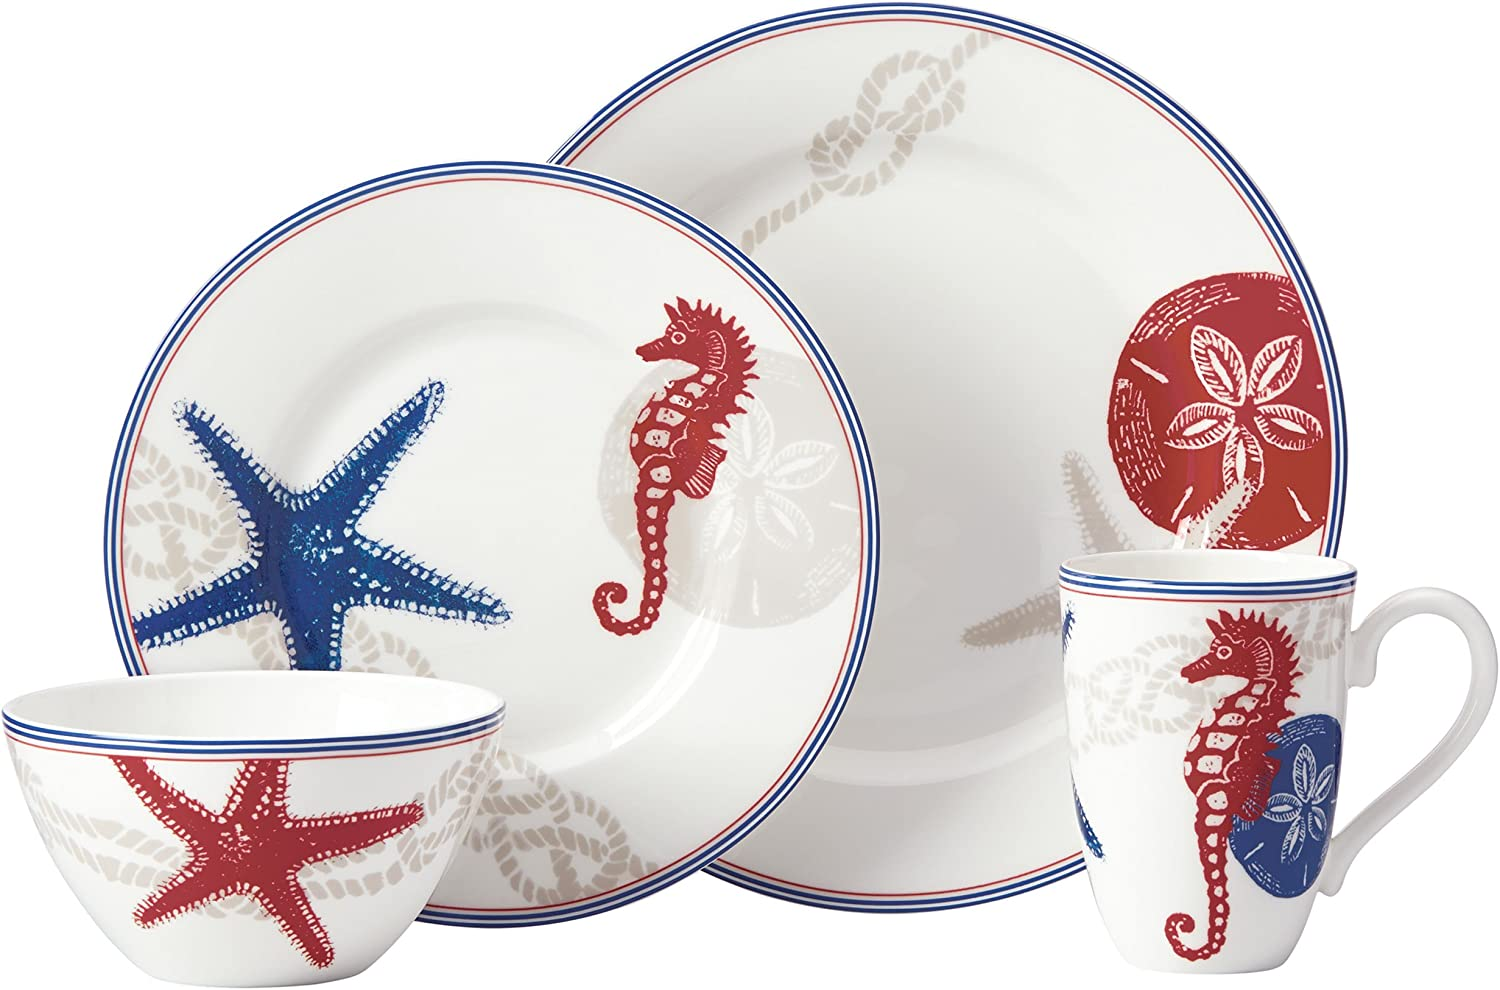 Lenox 4 Piece Oceanside Place Setting Dinnerware Set, Multicolor